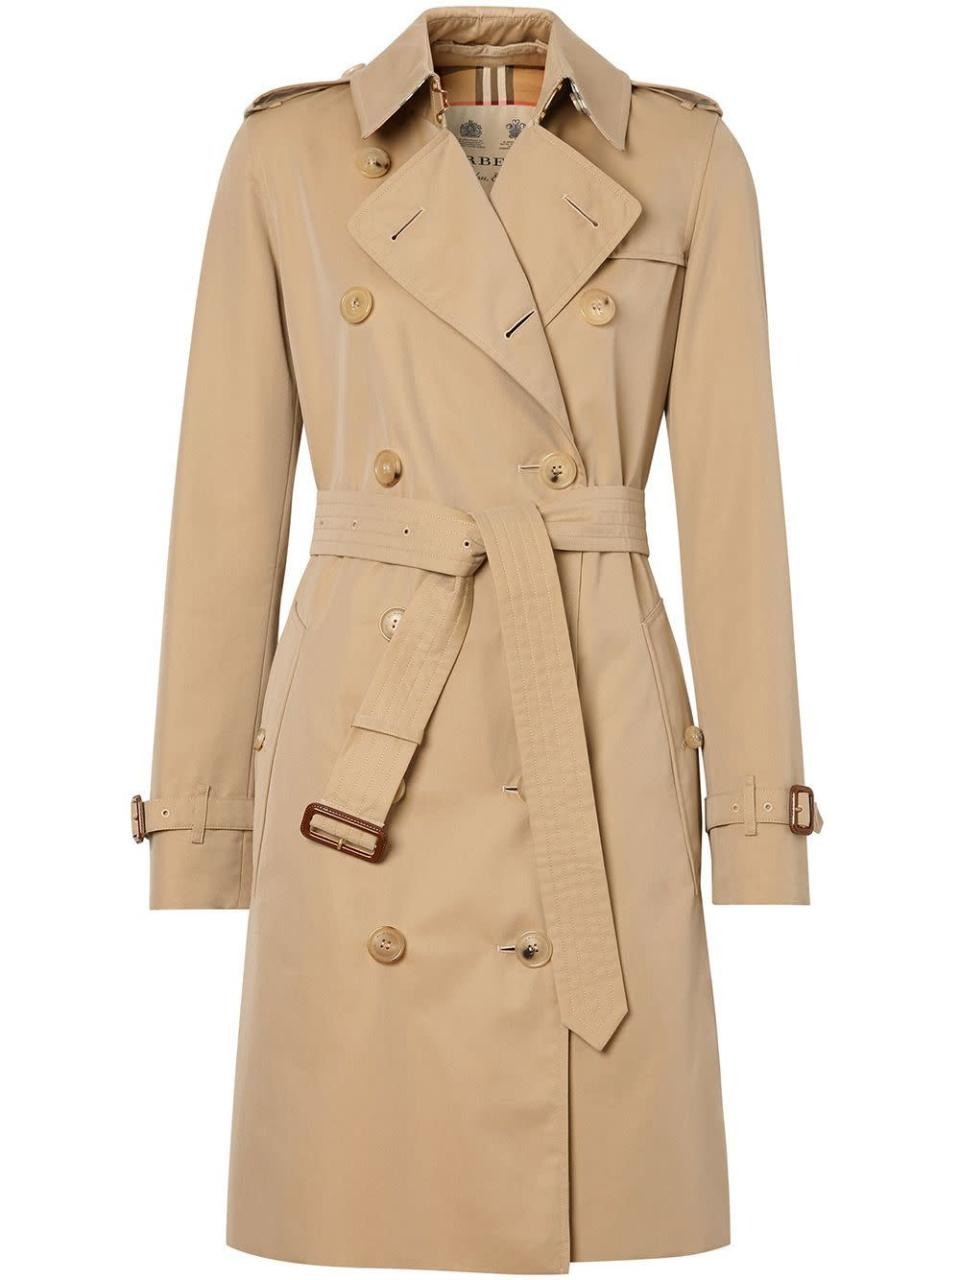 "<p><strong>Burberry</strong></p><p>farfetch.com</p><p><strong>$1990.00</strong></p><p><a href=""https://go.redirectingat.com?id=74968X1596630&url=https%3A%2F%2Fwww.farfetch.com%2Fshopping%2Fwomen%2Fburberry-the-kensington-heritage-trench-coat-item-15166129.aspx&sref=https%3A%2F%2Fwww.marieclaire.com%2Ffashion%2Fg35178951%2Fminimalist-wardrobe-steps%2F"" rel=""nofollow noopener"" target=""_blank"" data-ylk=""slk:SHOP IT"" class=""link rapid-noclick-resp"">SHOP IT</a></p><p>A classic Burberry trench is worth the splurge. Buy it once and you'll wear it forever. </p>"